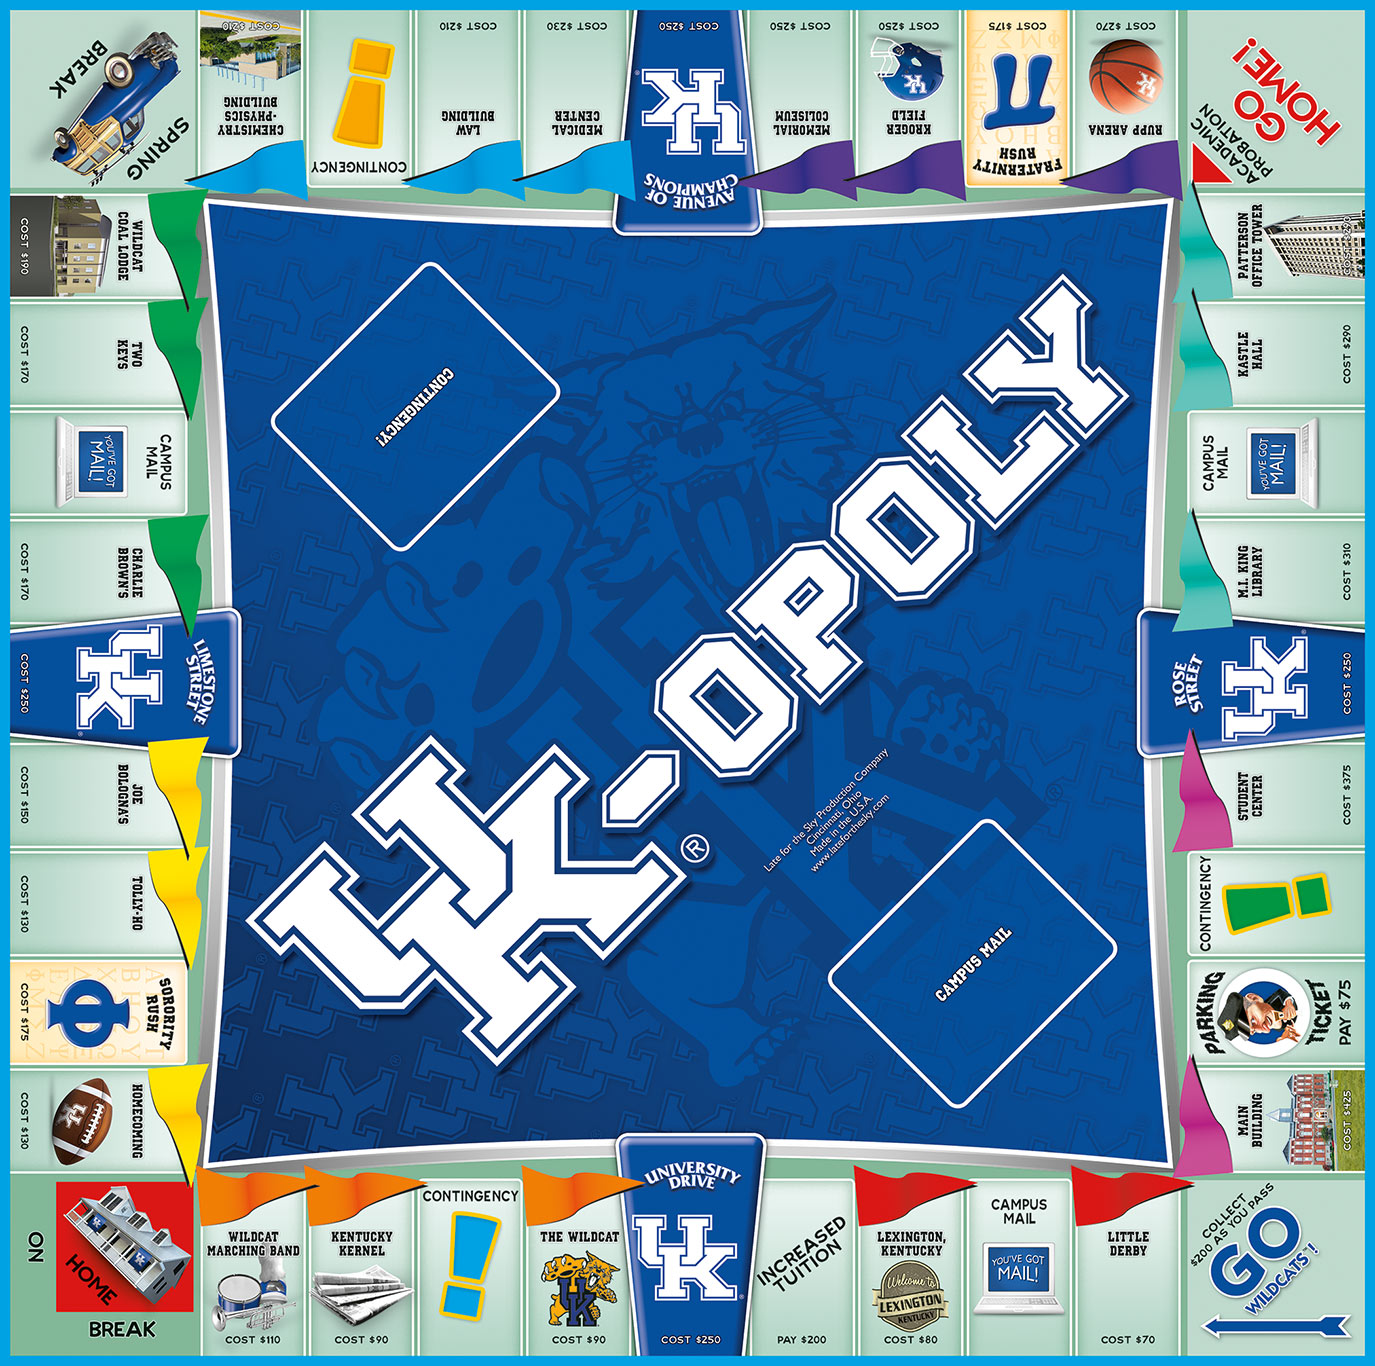 UK-OPOLY Board Game